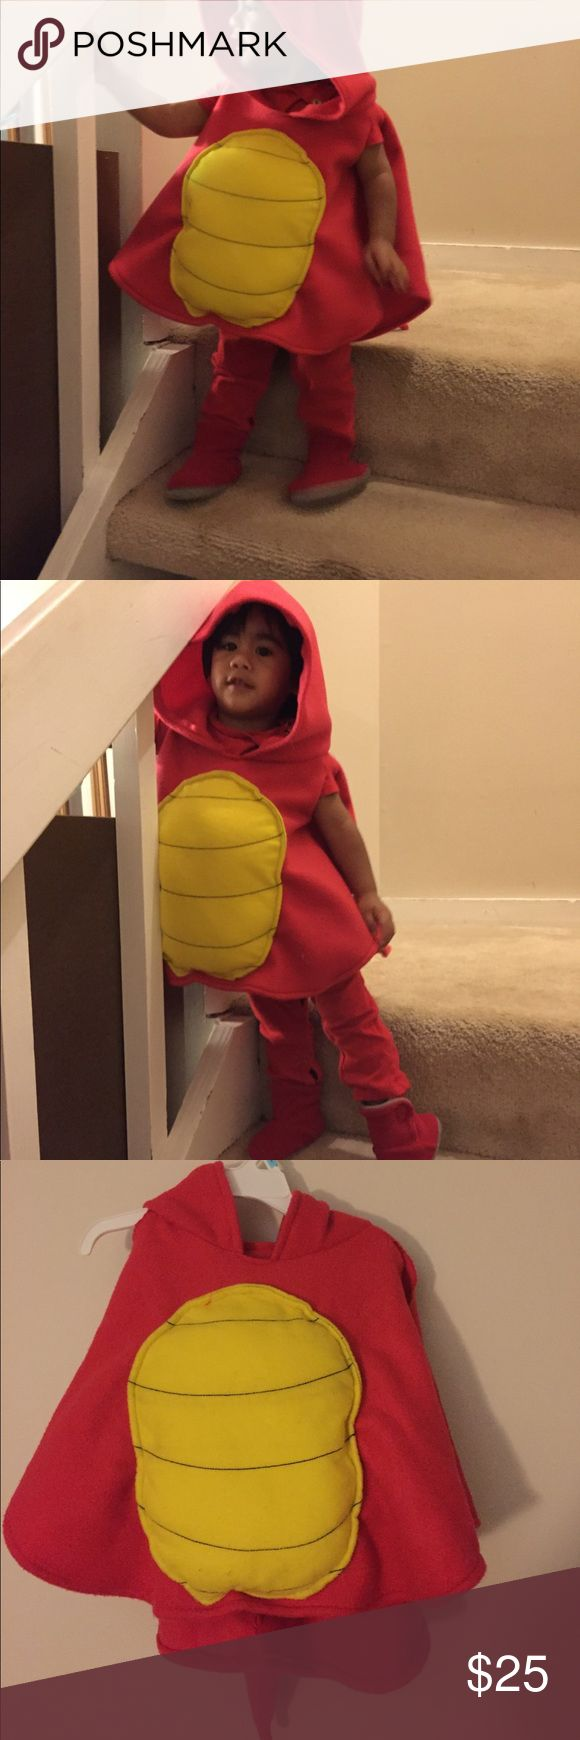 Dragon cape costume 18-24 months Hand sewn dragon cape costume, has stuffed tail that is attached to the cape with hood. Material is fleece and can fit 18 months up to 2T. The red boots or bodysuit does not come with the costume. Great for Halloween Costumes Halloween